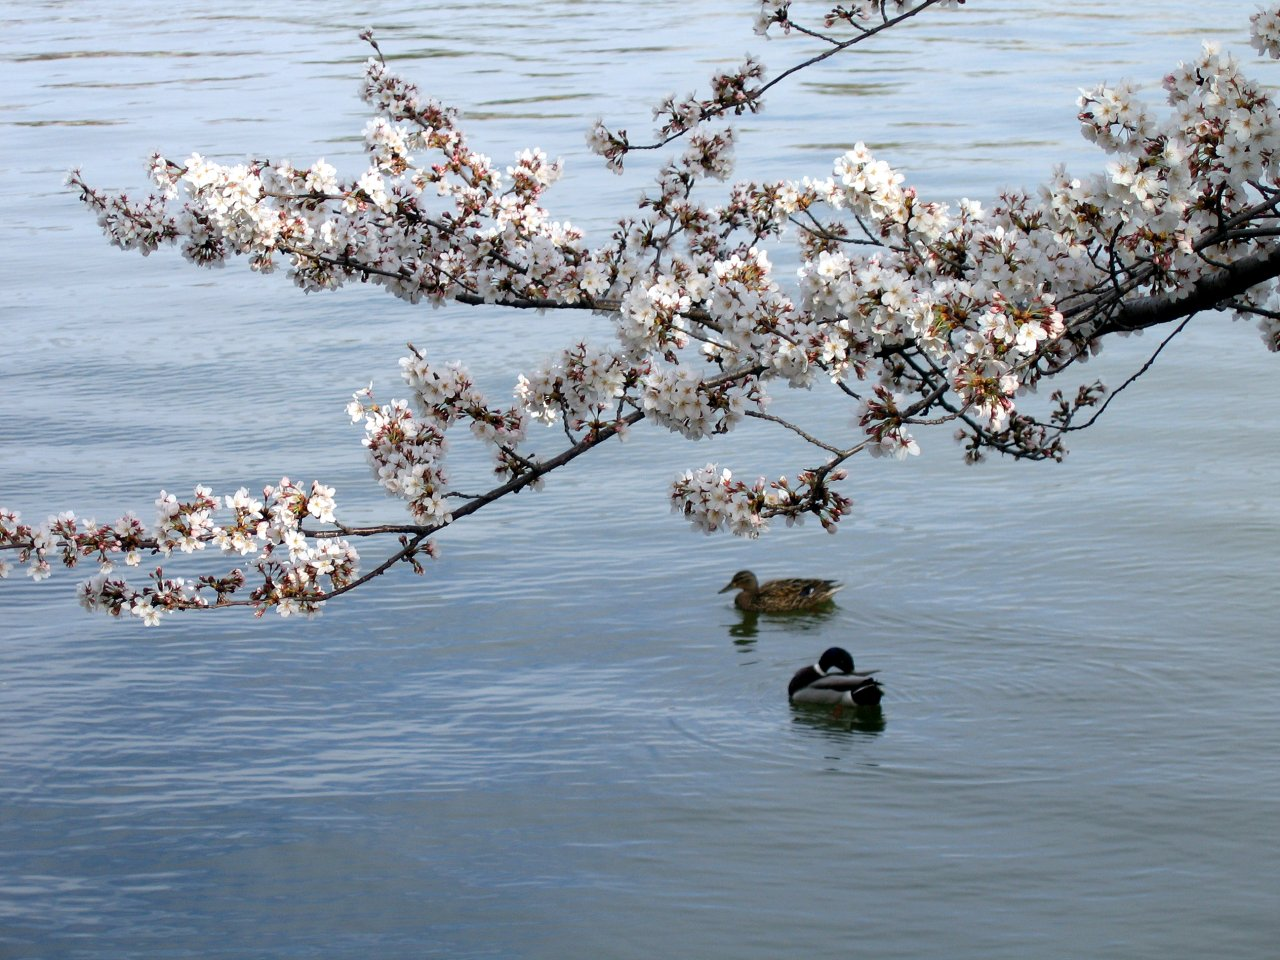 Ducks hanging around the tidal basin.  Mmmm.... duck.